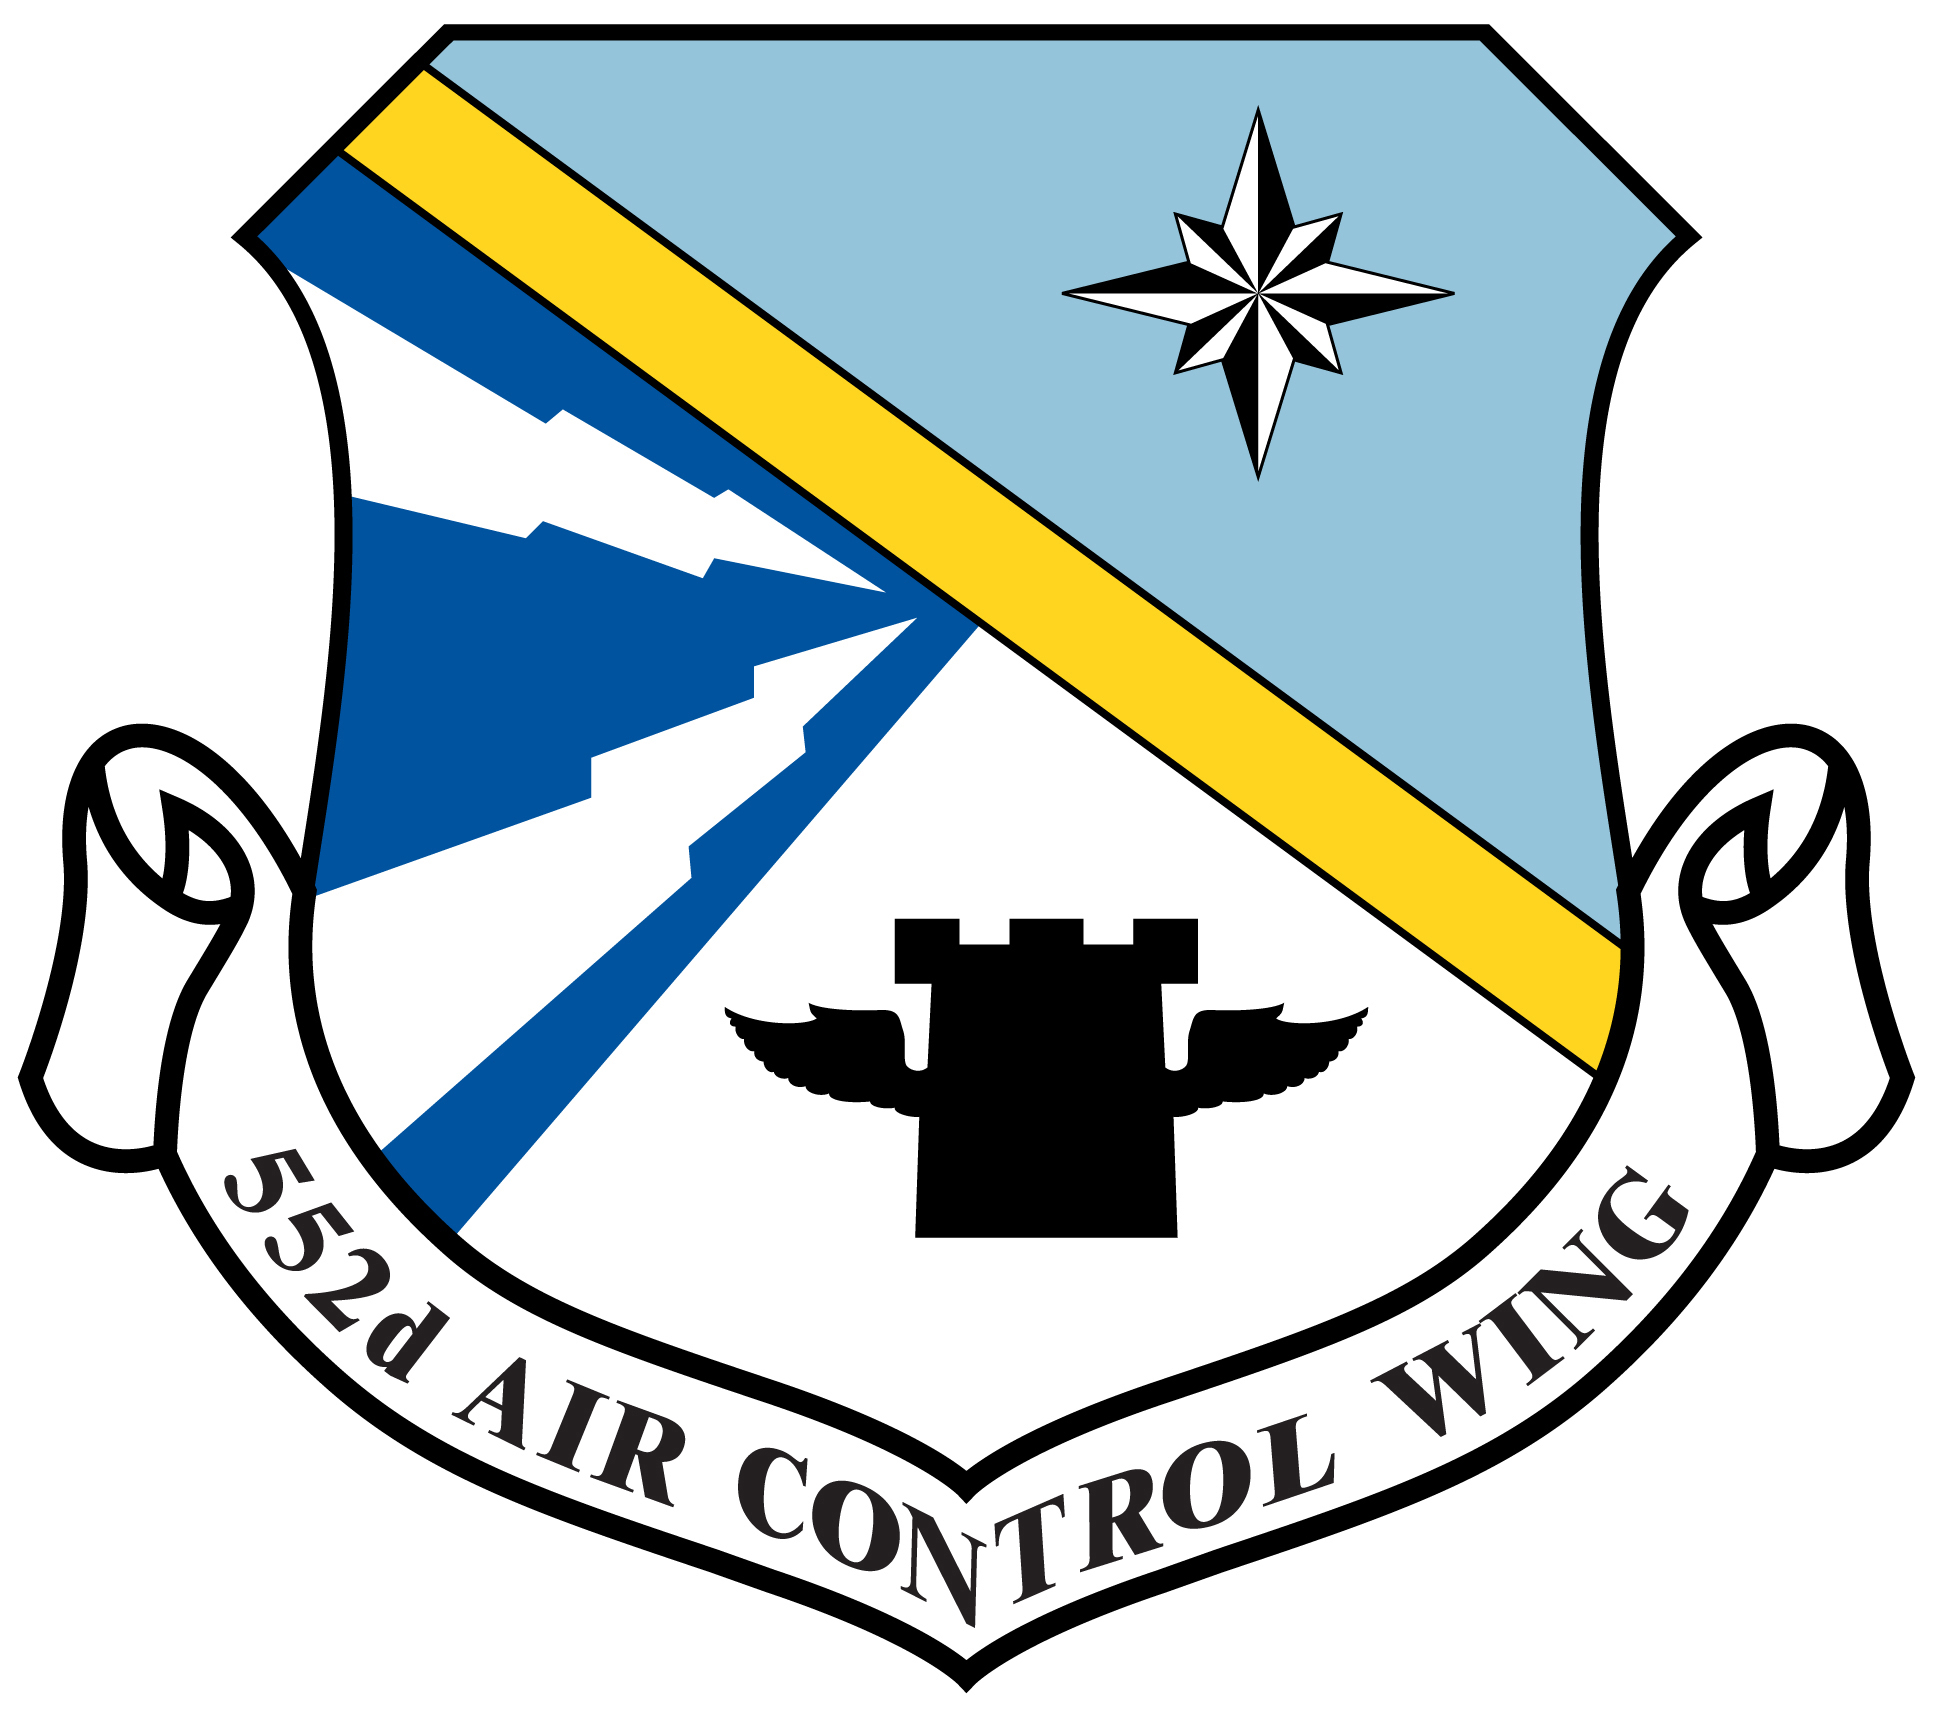 552nd Air Control Wing shield